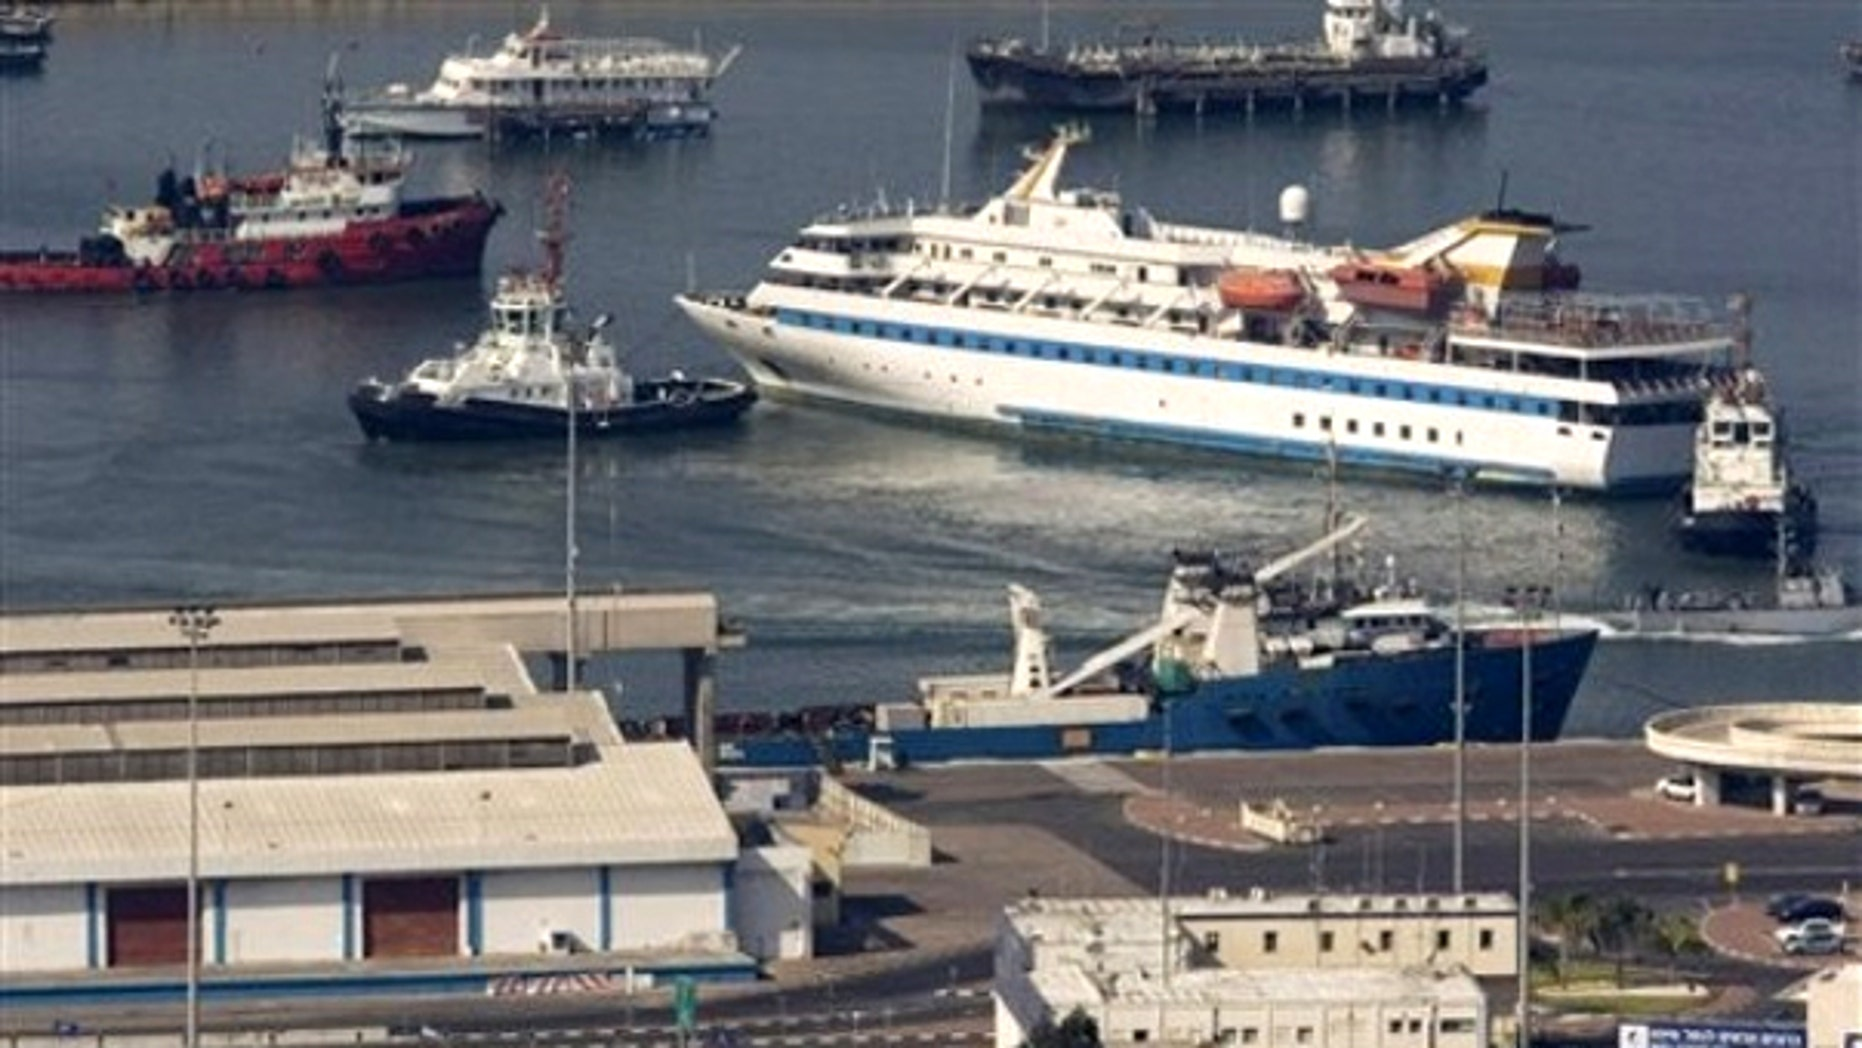 Aug. 5: he Mavi Marmara ship, aboard which Israel's deadly raid on a Gaza-bound flotilla took place on May 31, 2010, leaves the Haifa port, northern Israel, on its way back home to Turkey.